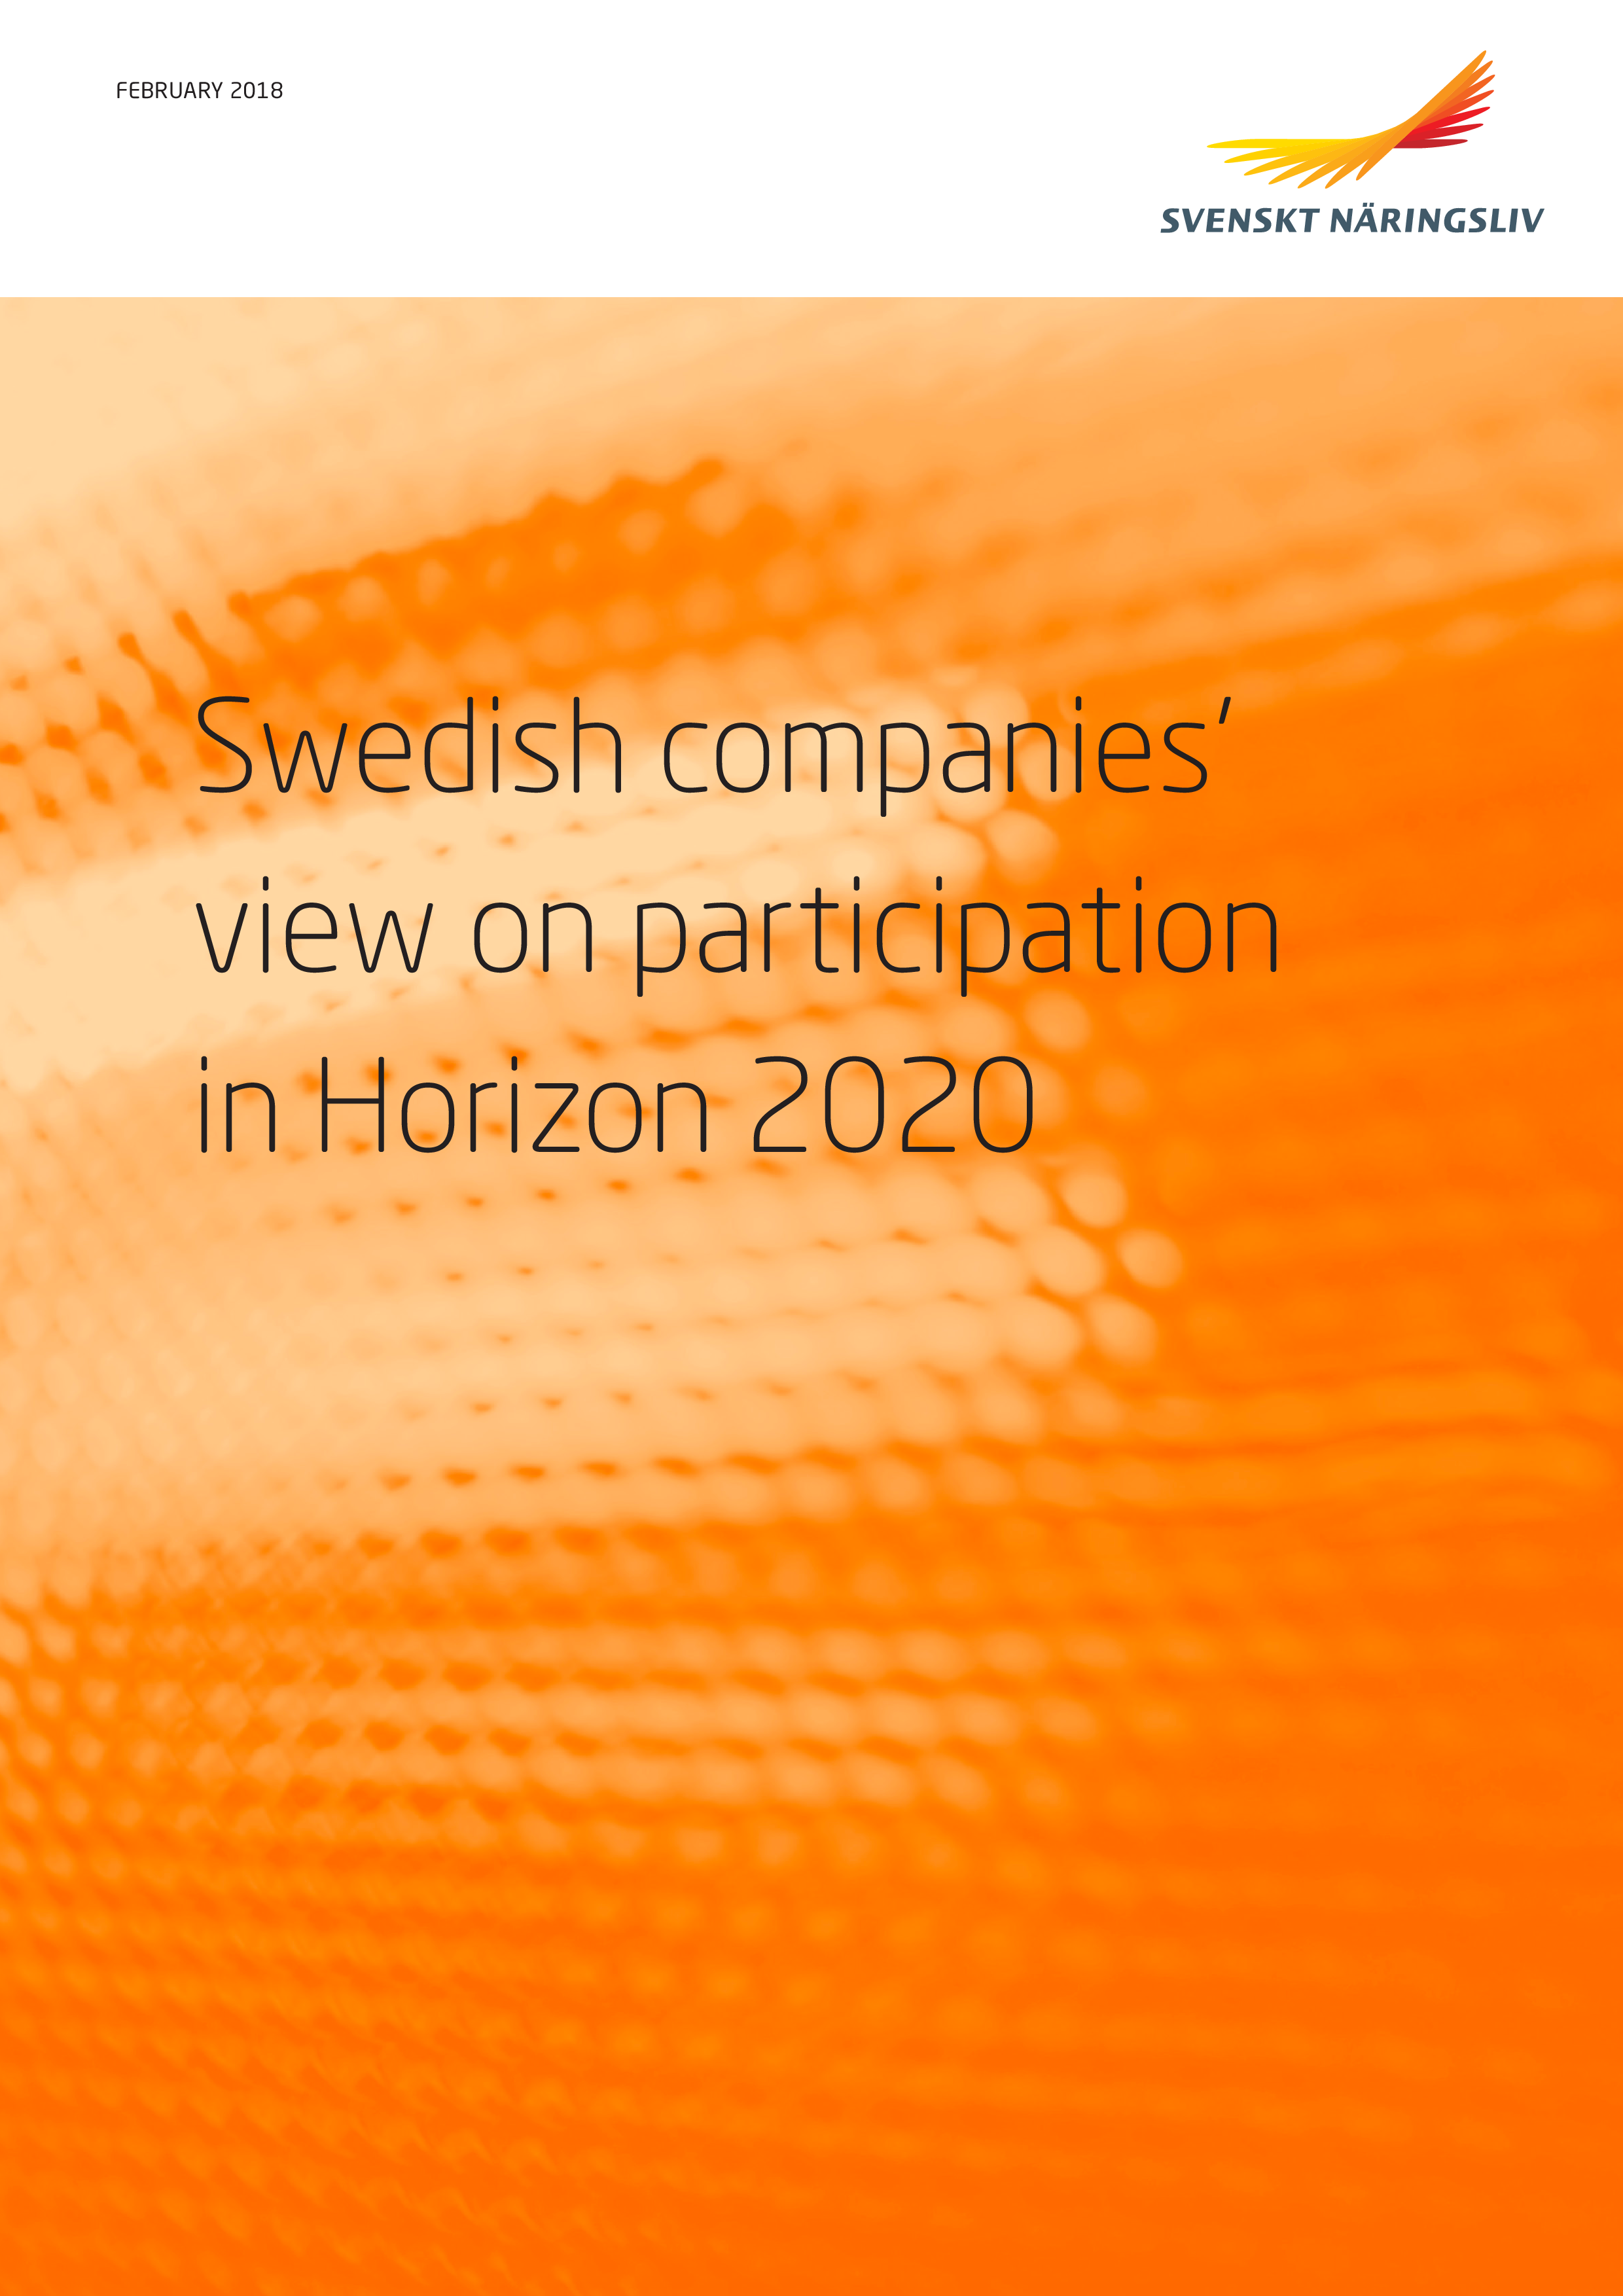 Swedish companies view on participation in Horizon 2020